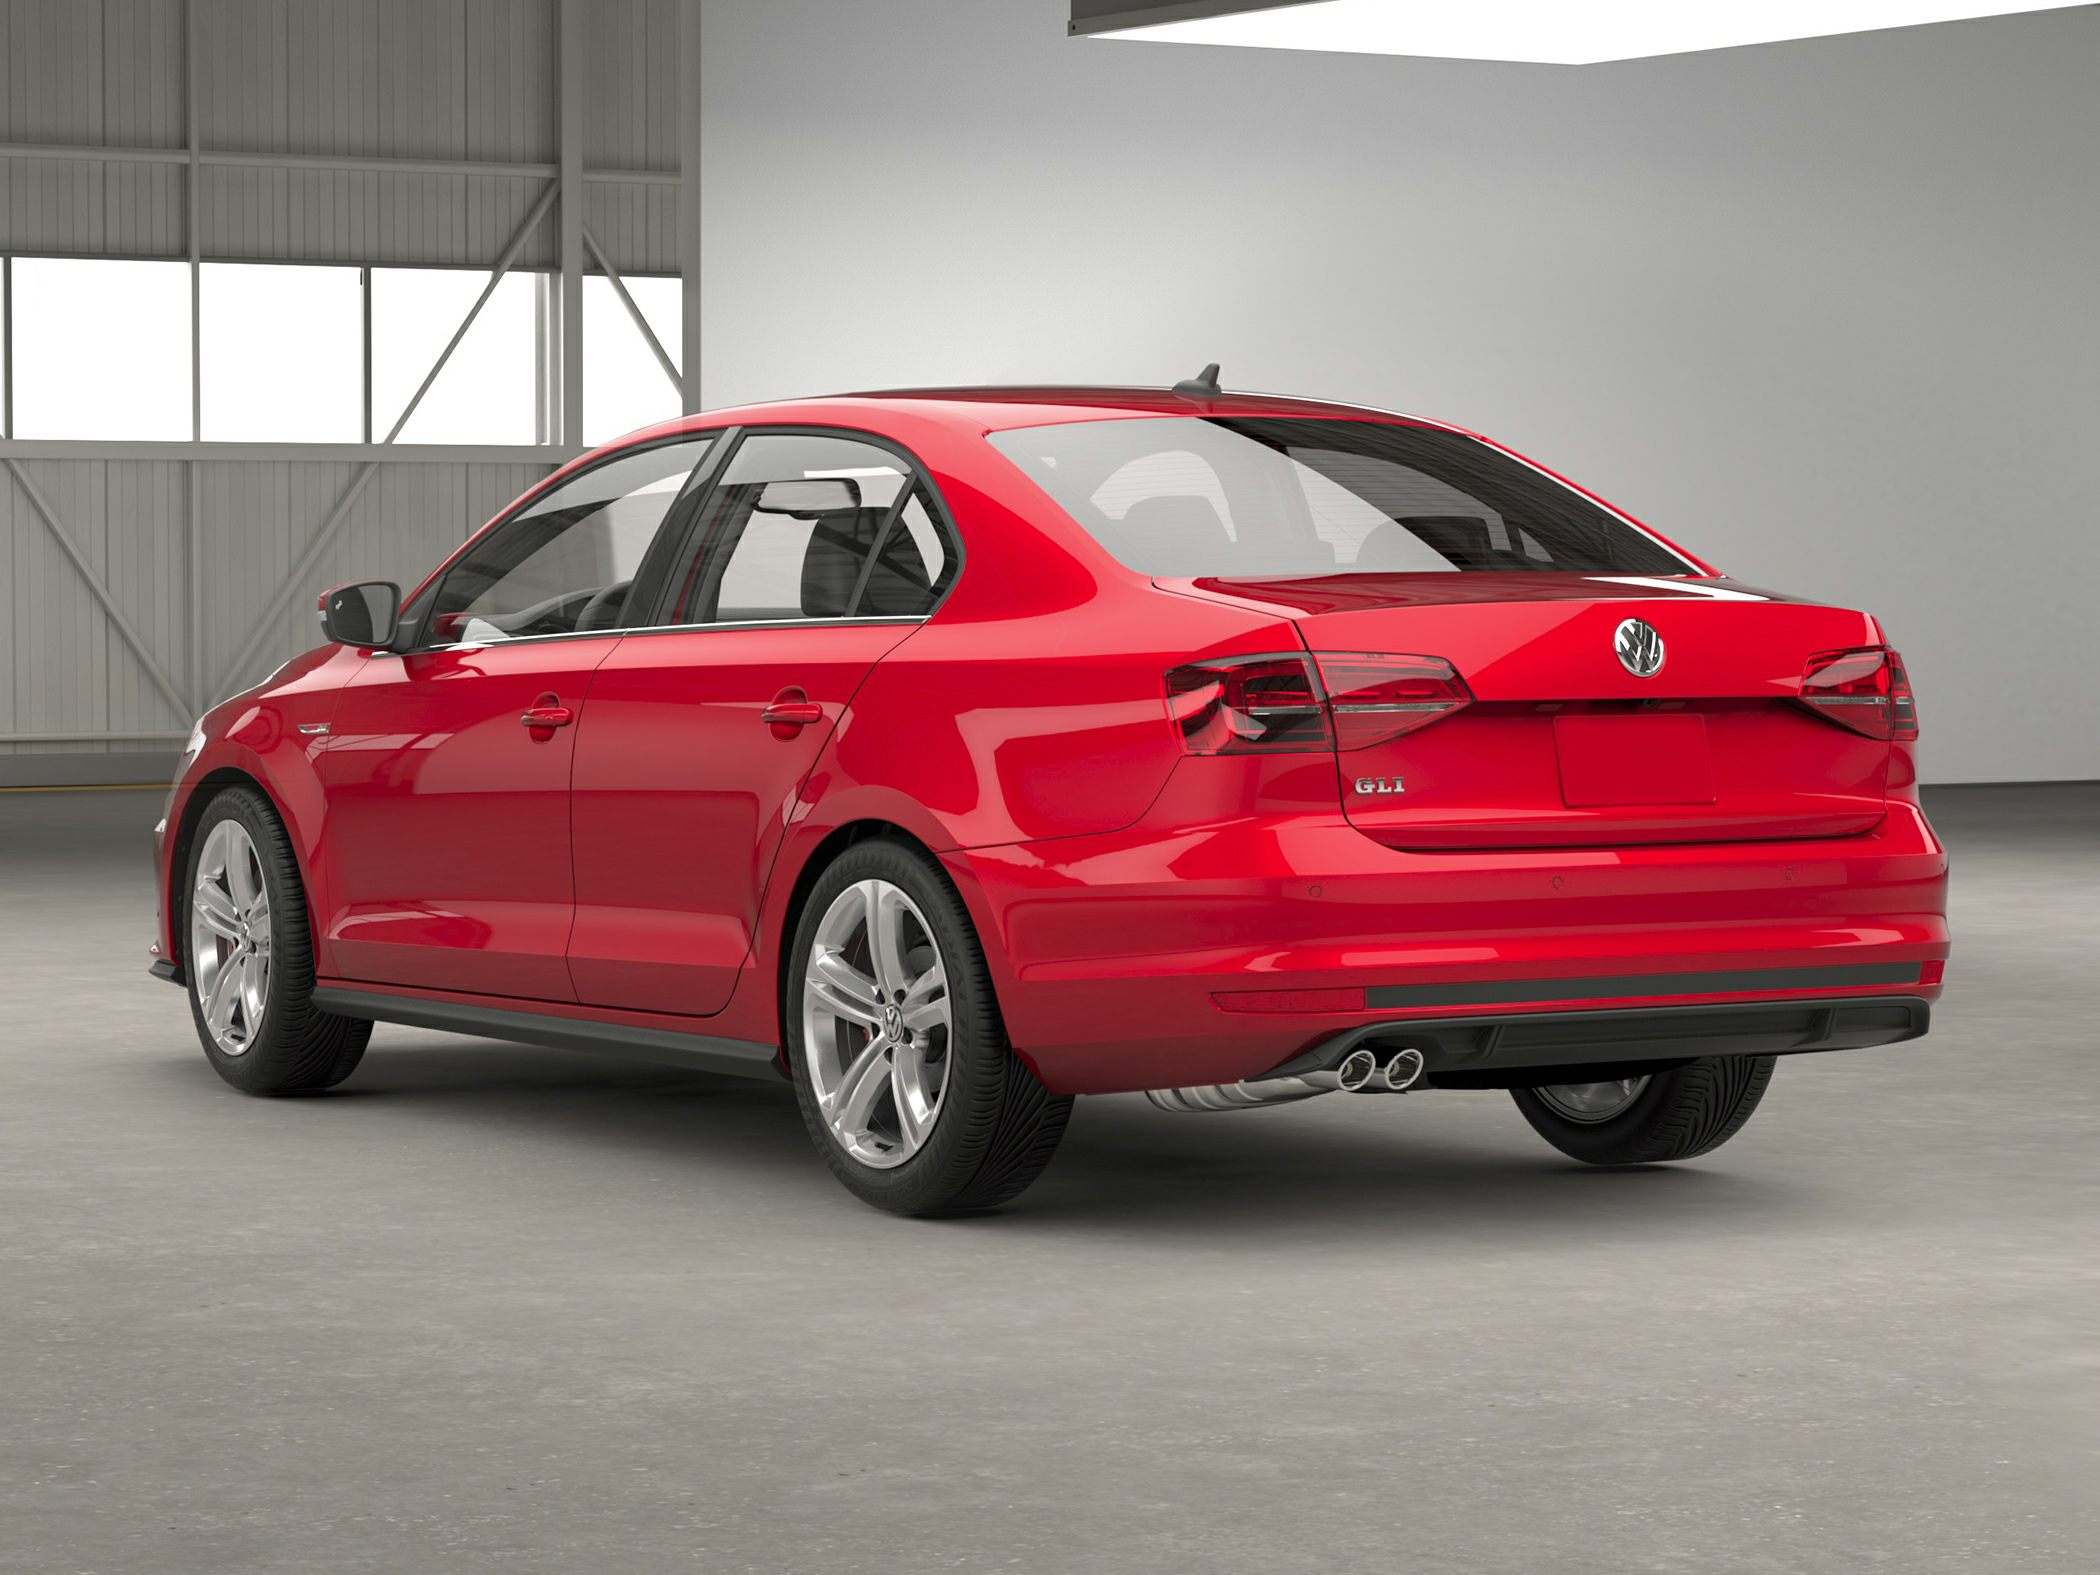 2017 volkswagen jetta deals prices incentives leases overview carsdirect. Black Bedroom Furniture Sets. Home Design Ideas